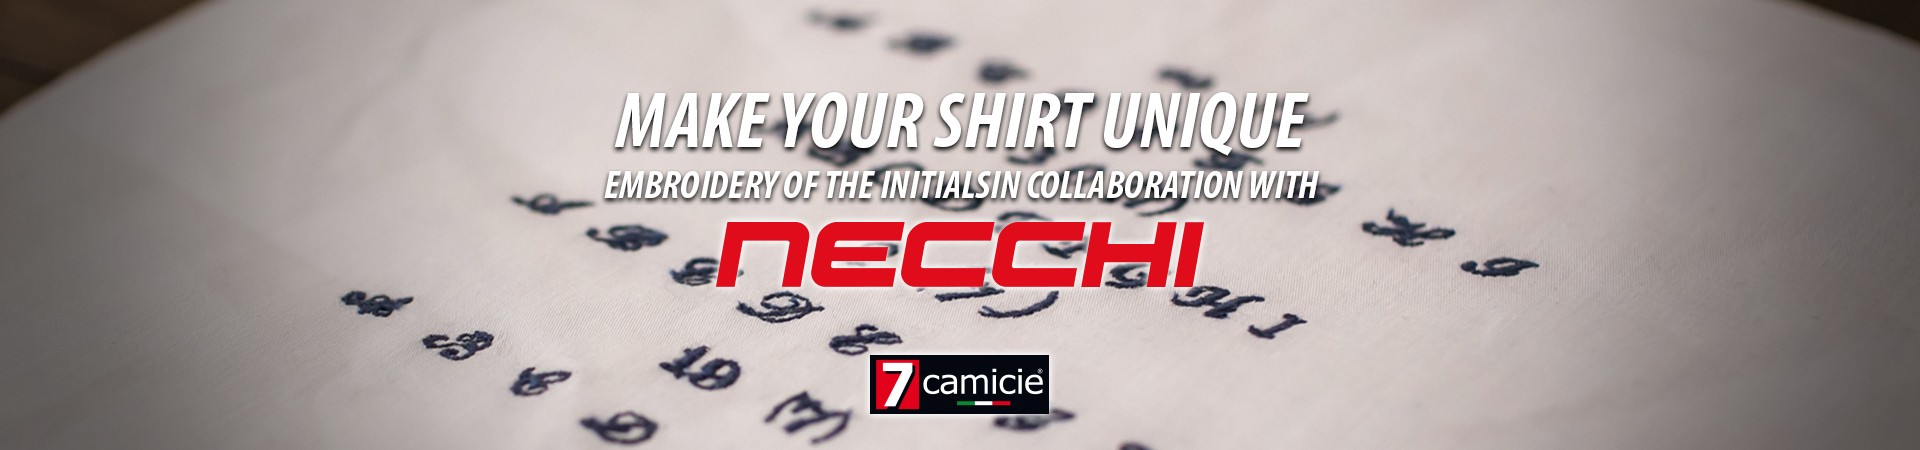 The shirts with initials, a unique garment signed by Necchi